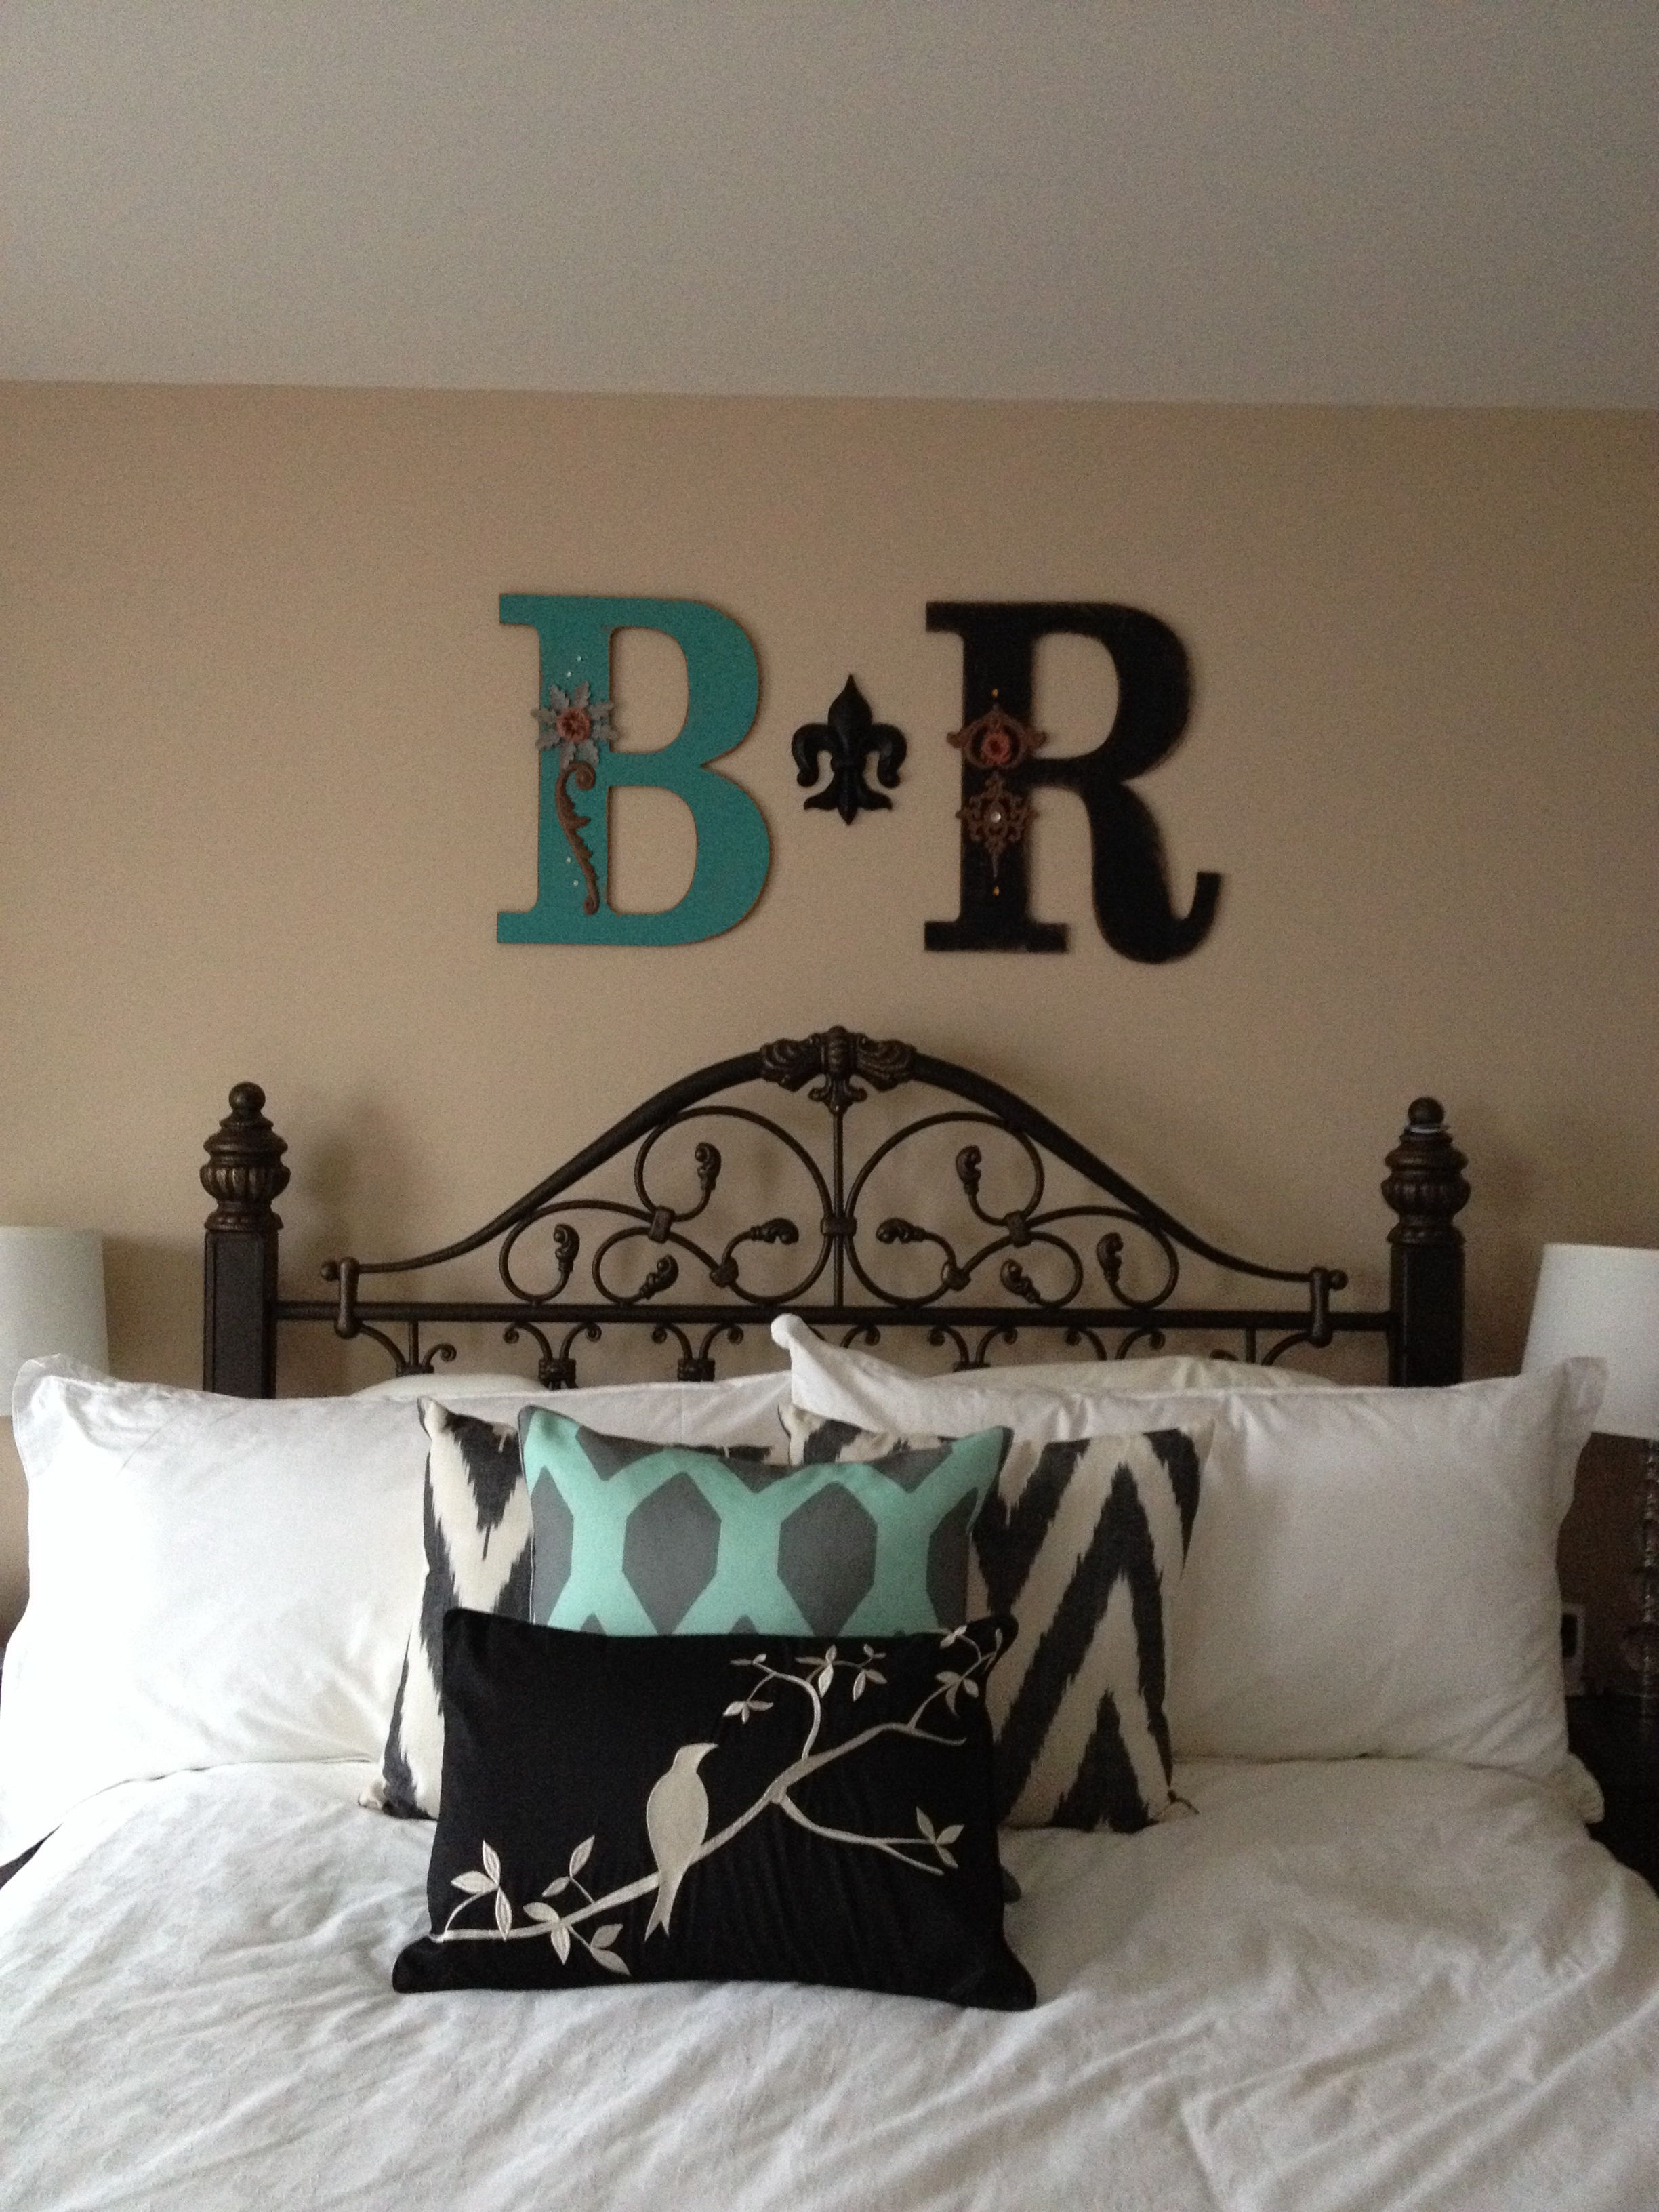 Bedroom Decor Letters From Hobby Lobby Branalyn This